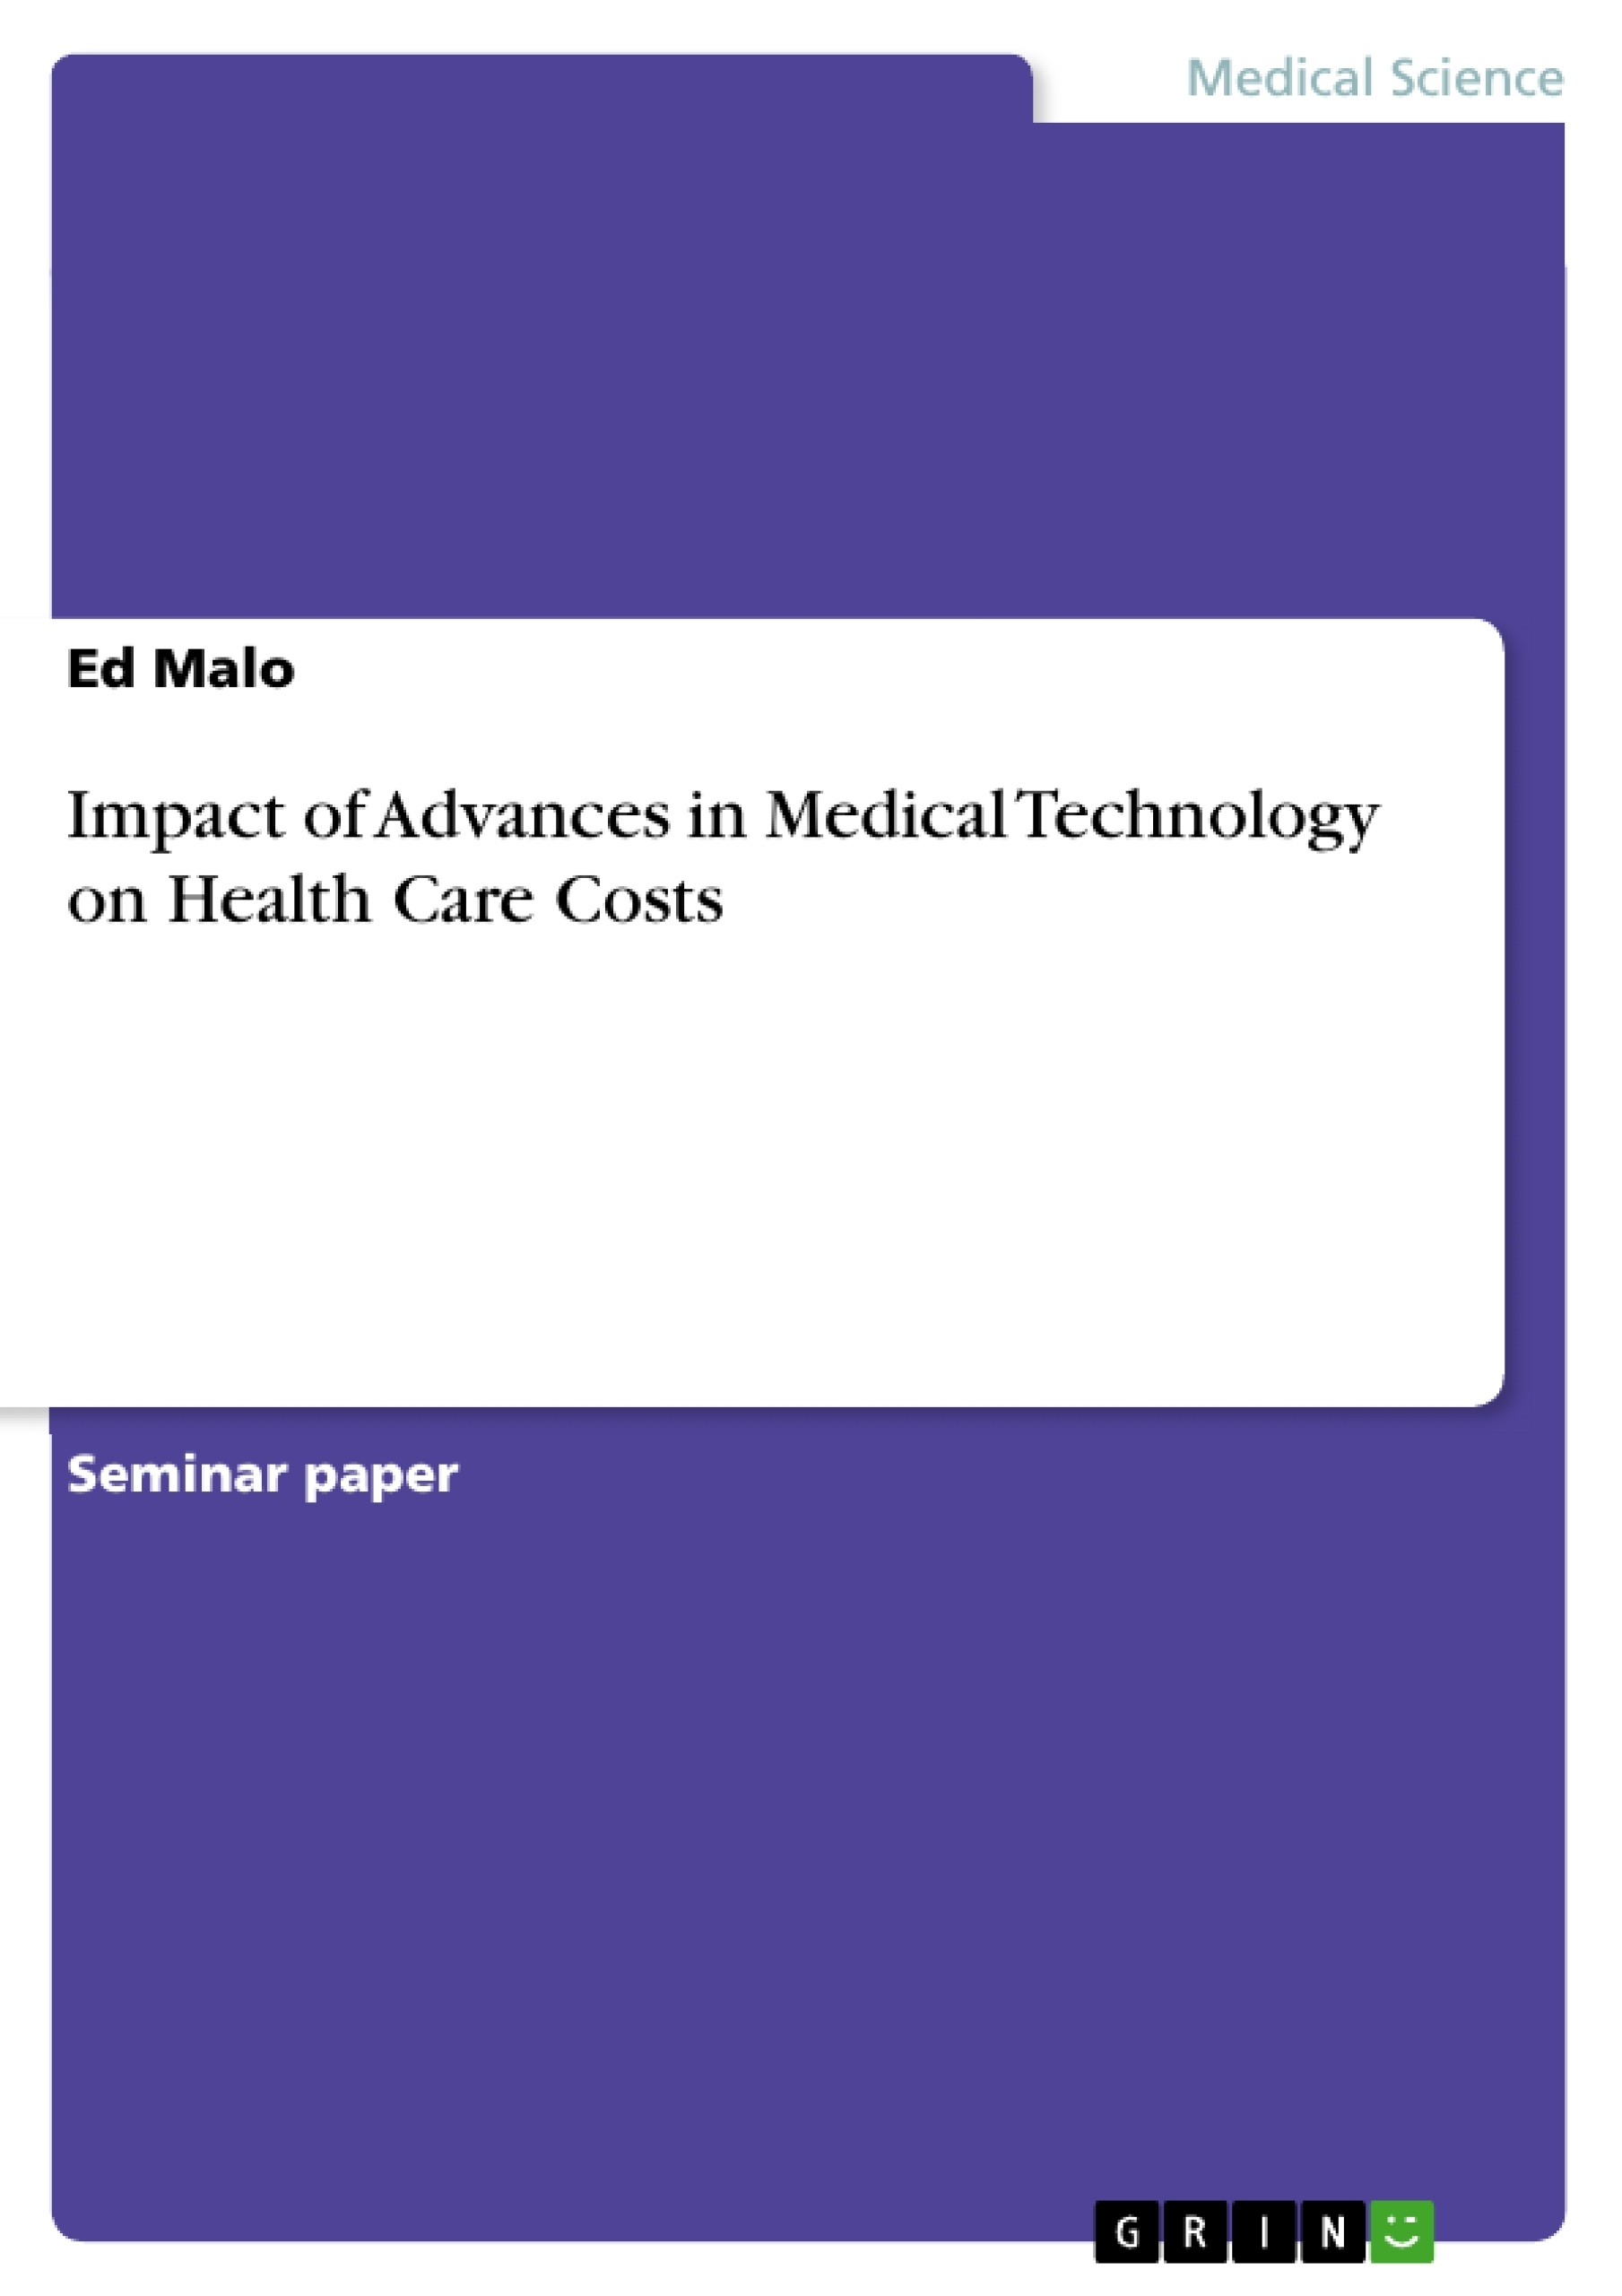 Title: Impact of Advances in Medical Technology on Health Care Costs